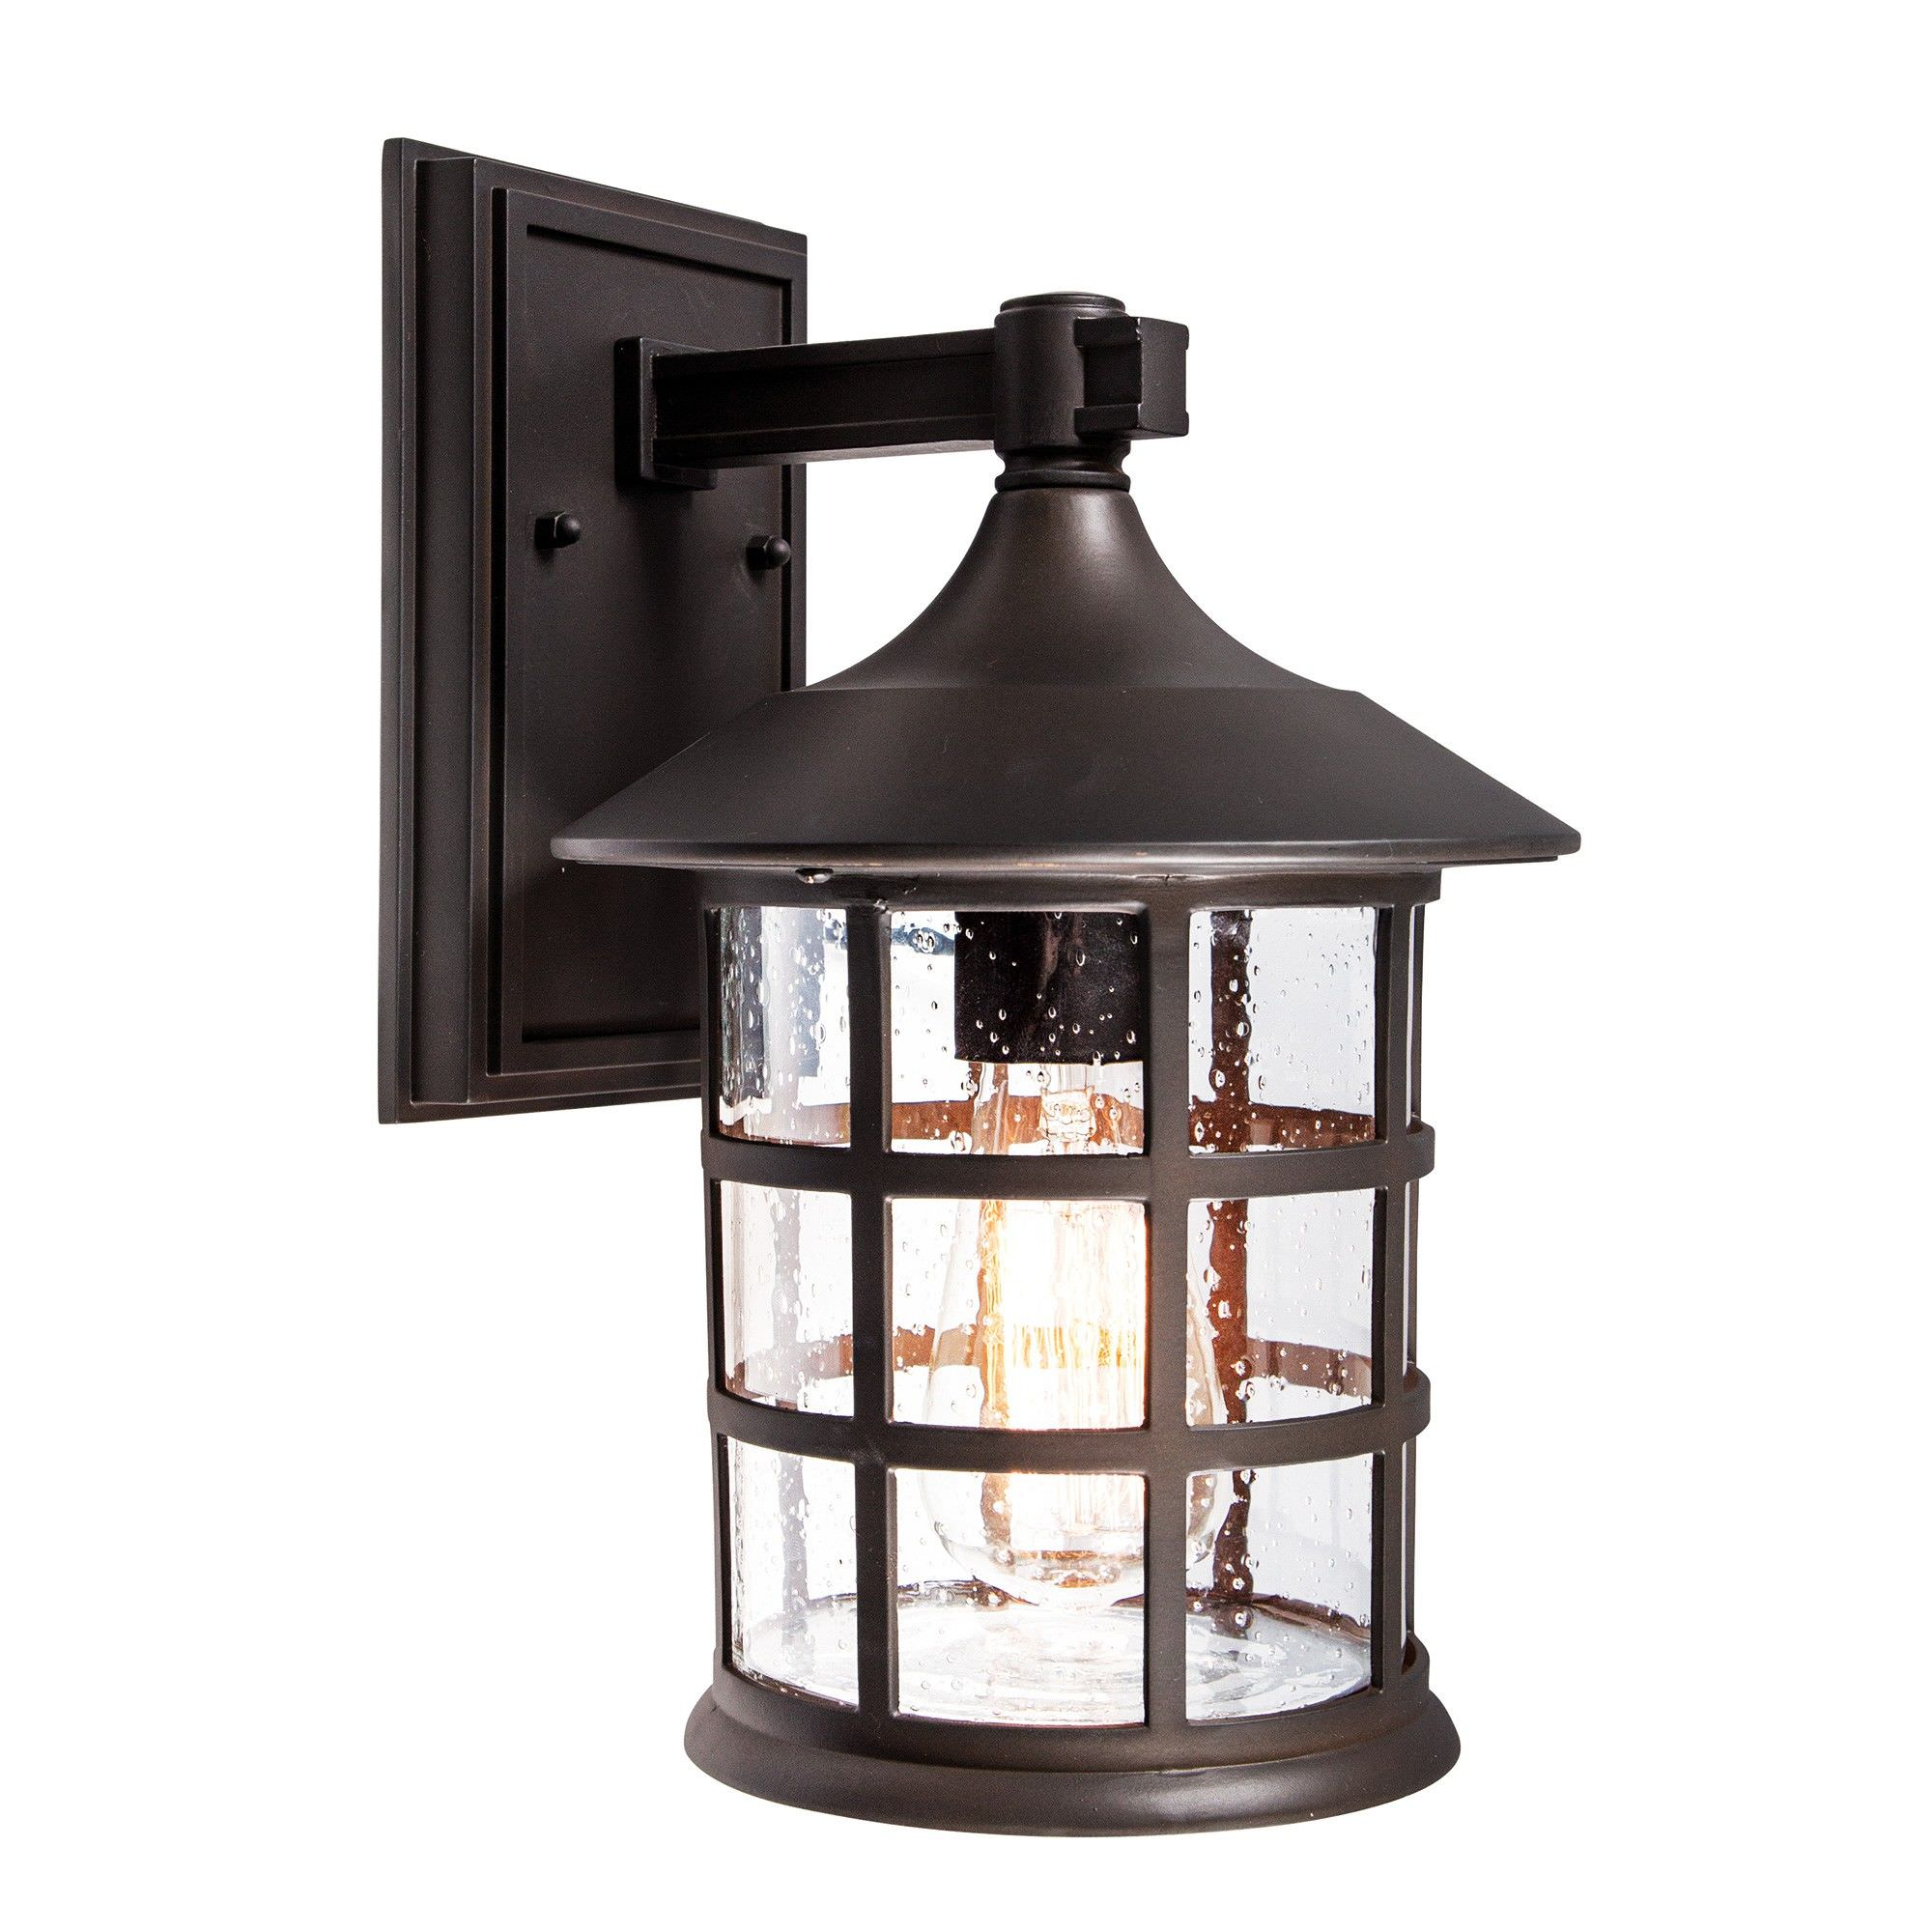 Louis IP44 Outdoor Wall Lantern, Large